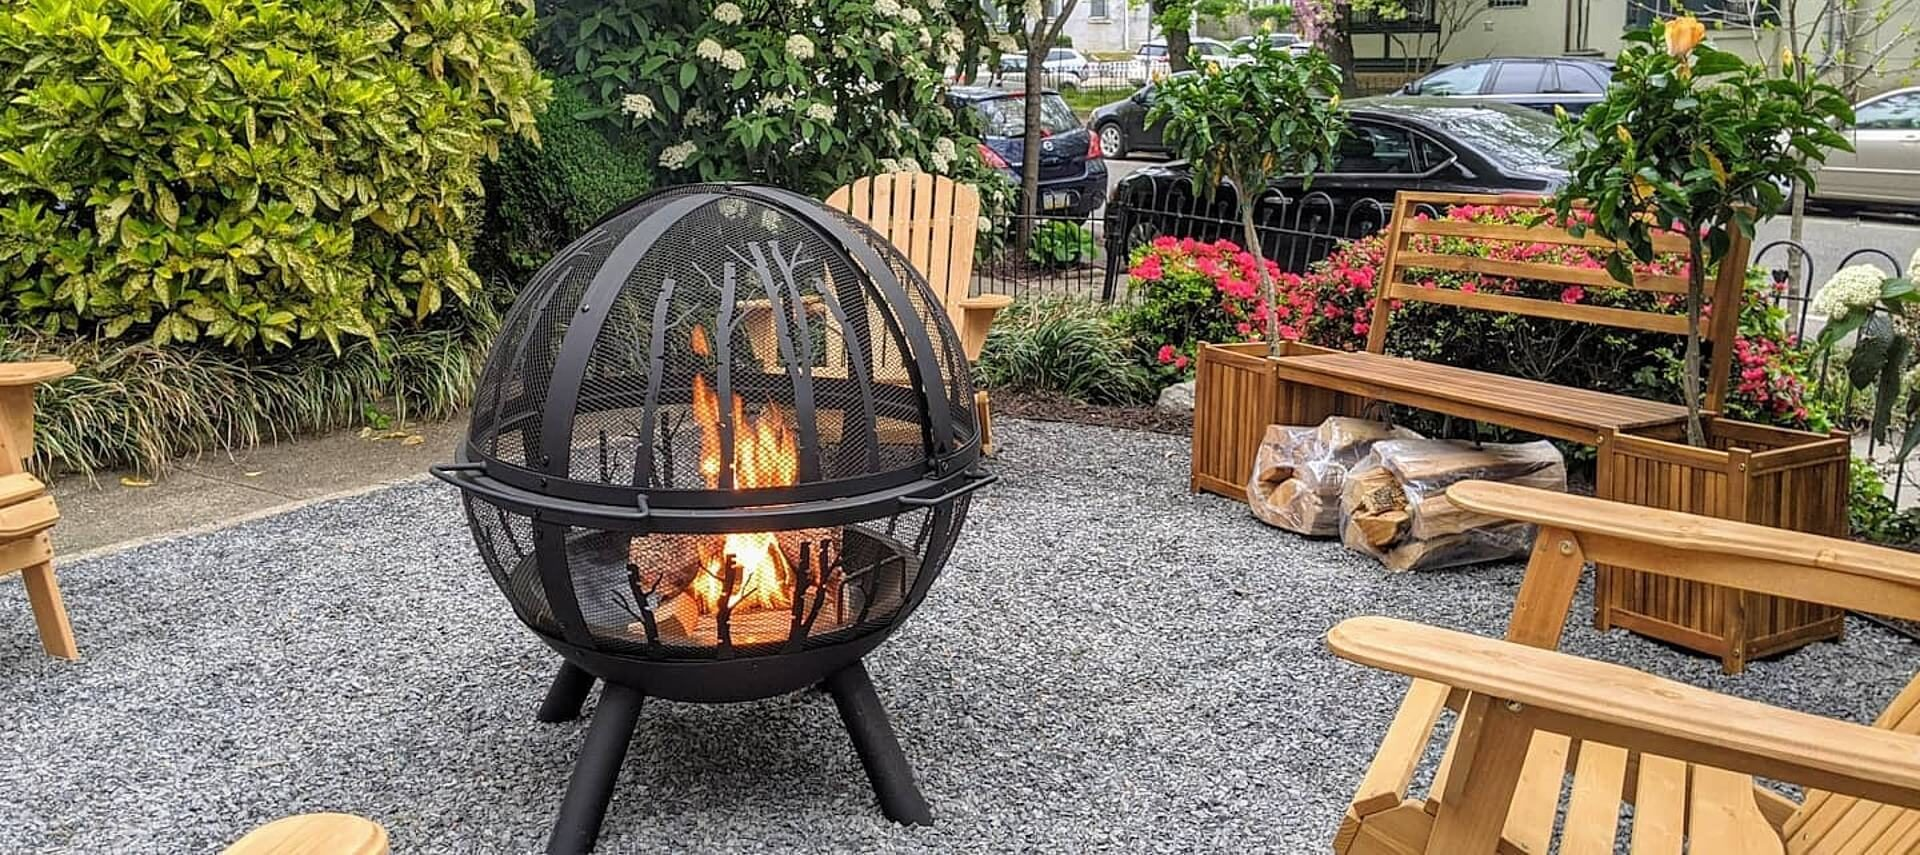 Outdoor fire pit in the shape of a globe surrounded by wooden adirondack chairs